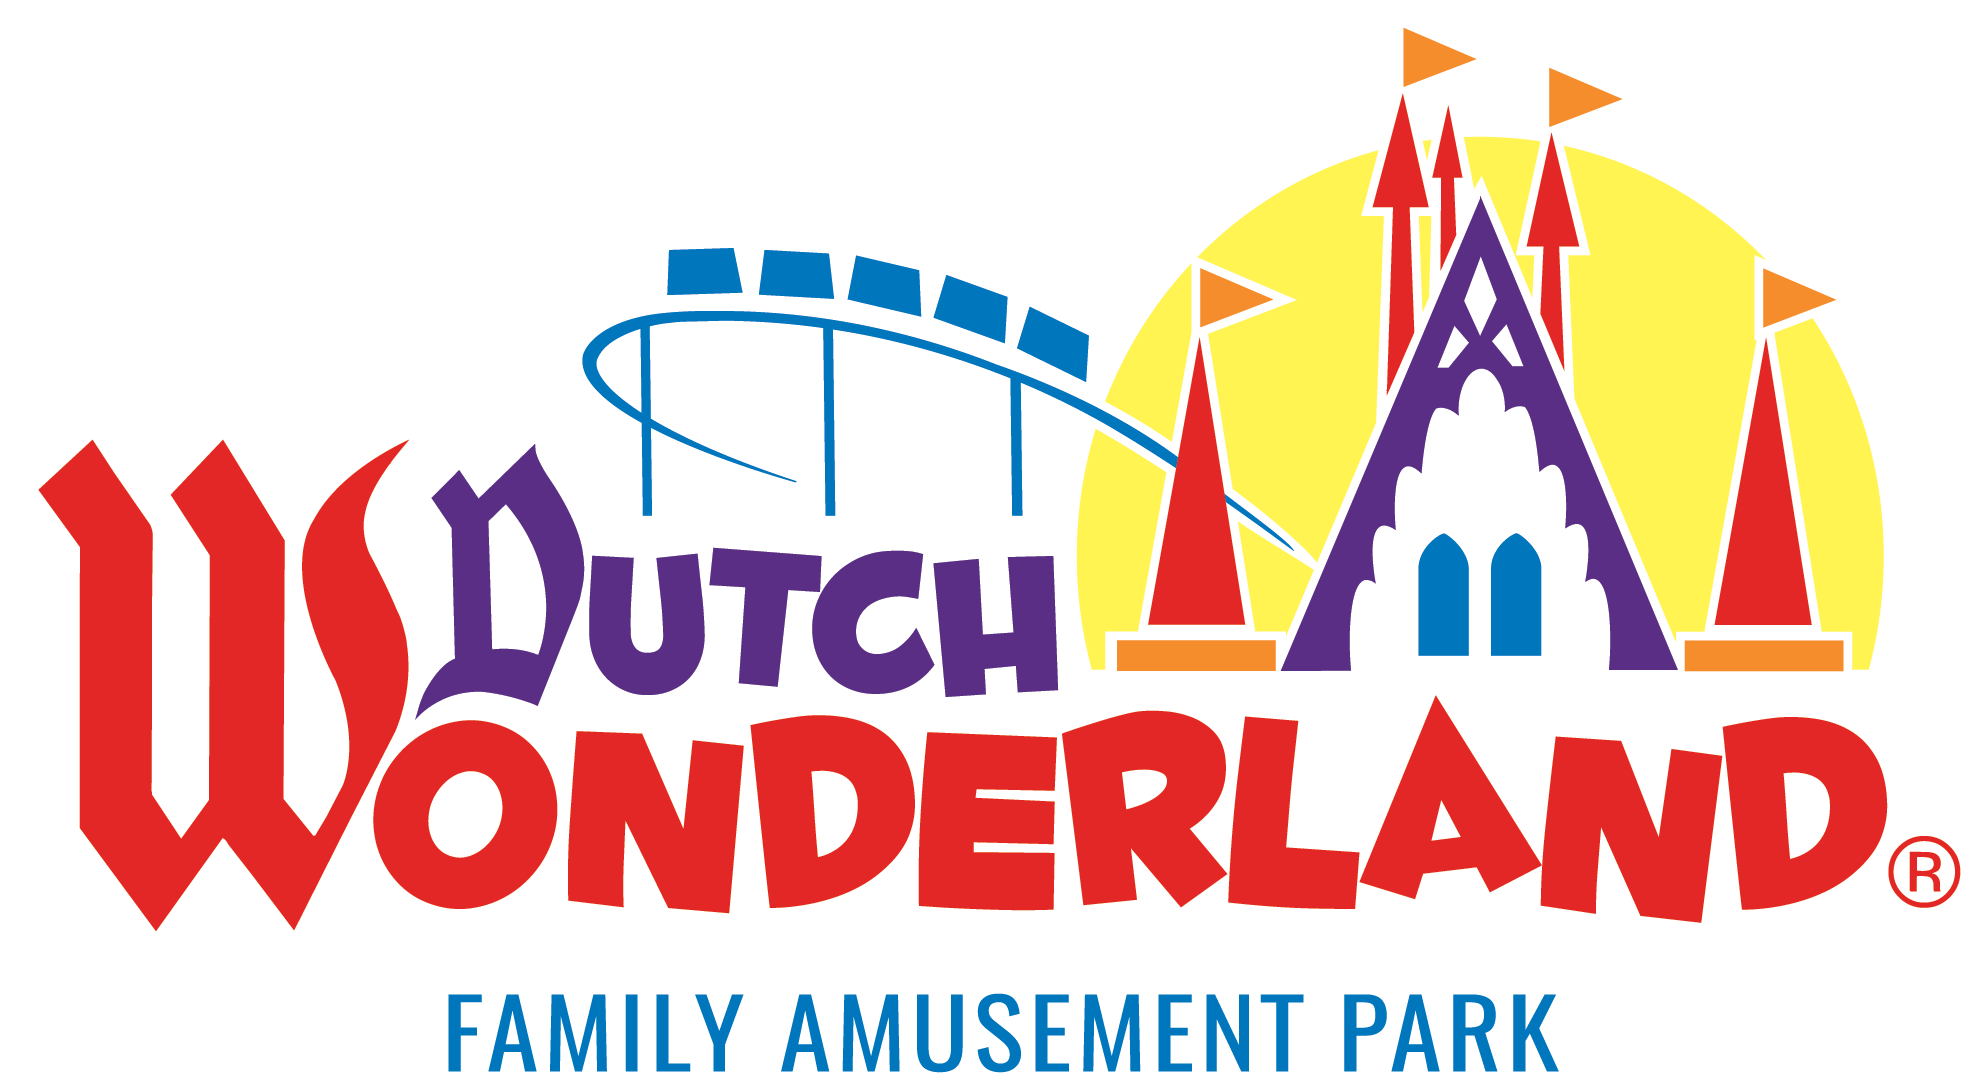 Dutch Wonderland Family Amusement Park